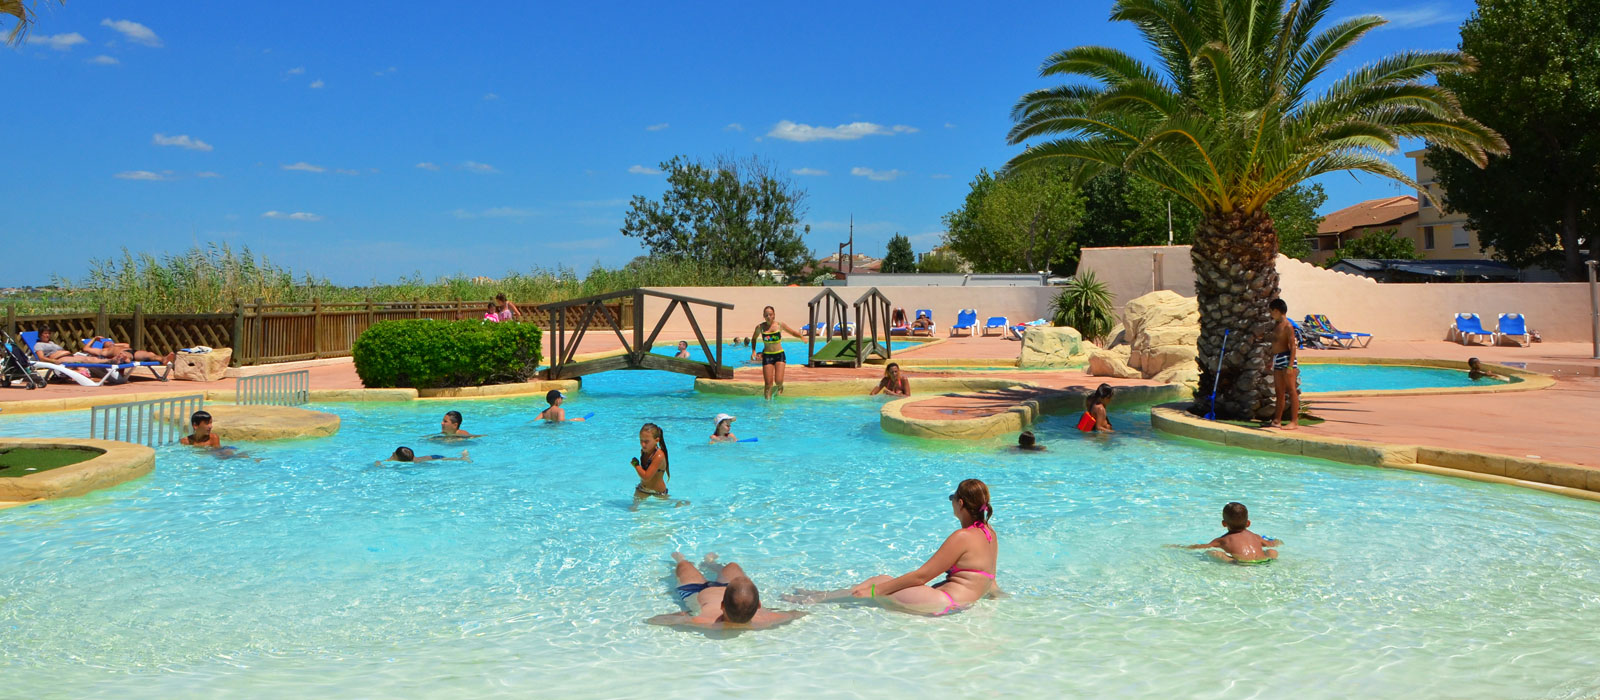 Camping corse avec piscine chauffée camping odalys